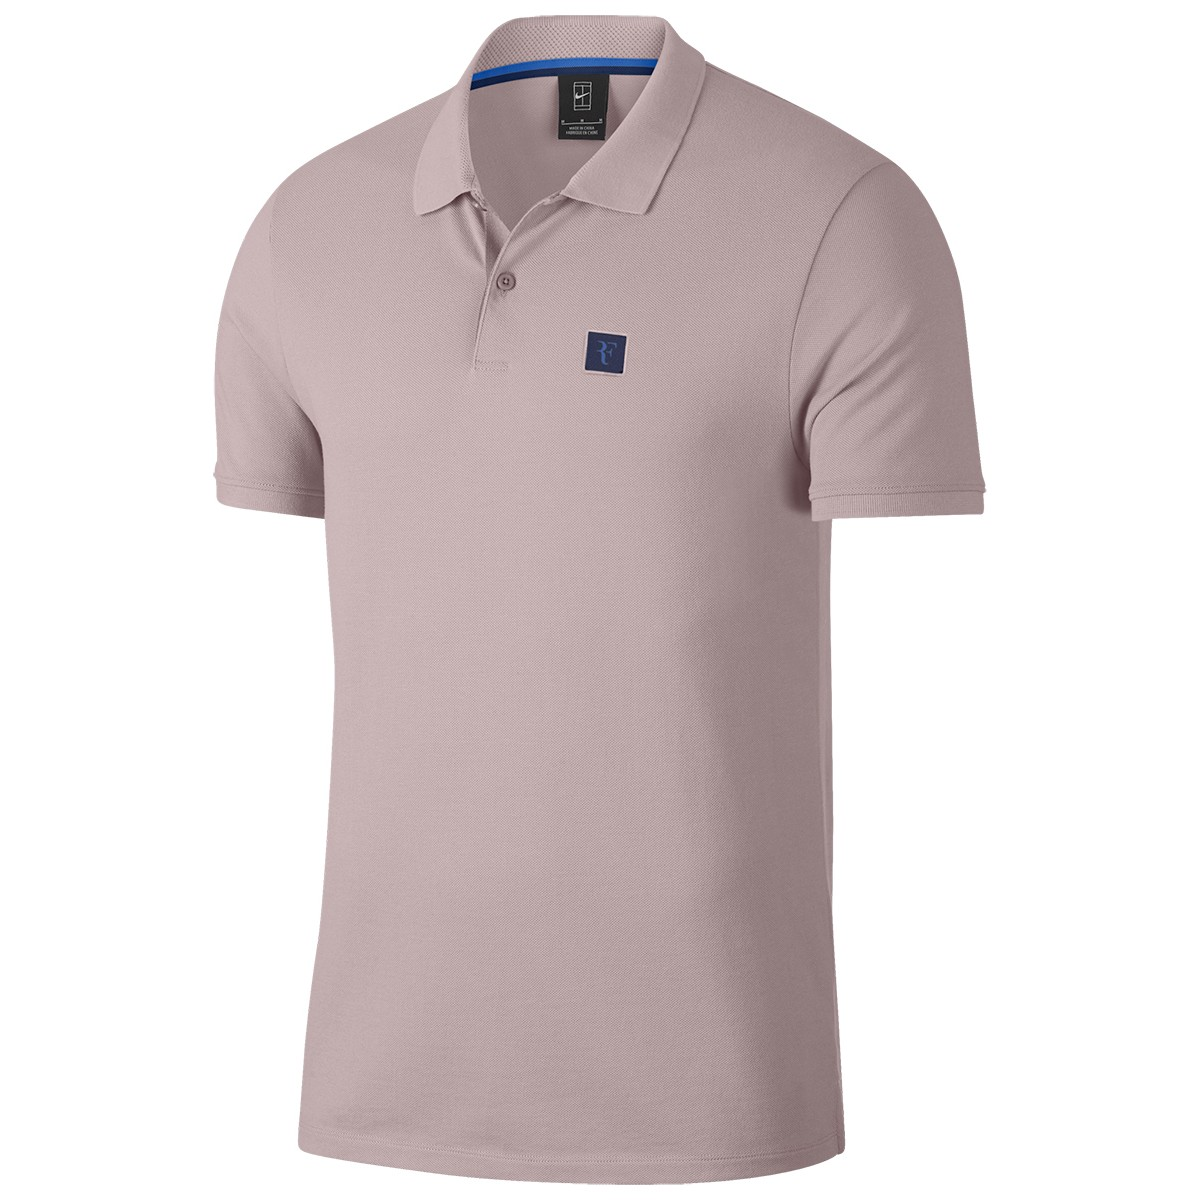 NIKE COURT FEDERER ESSENTIALS MASTERS POLO